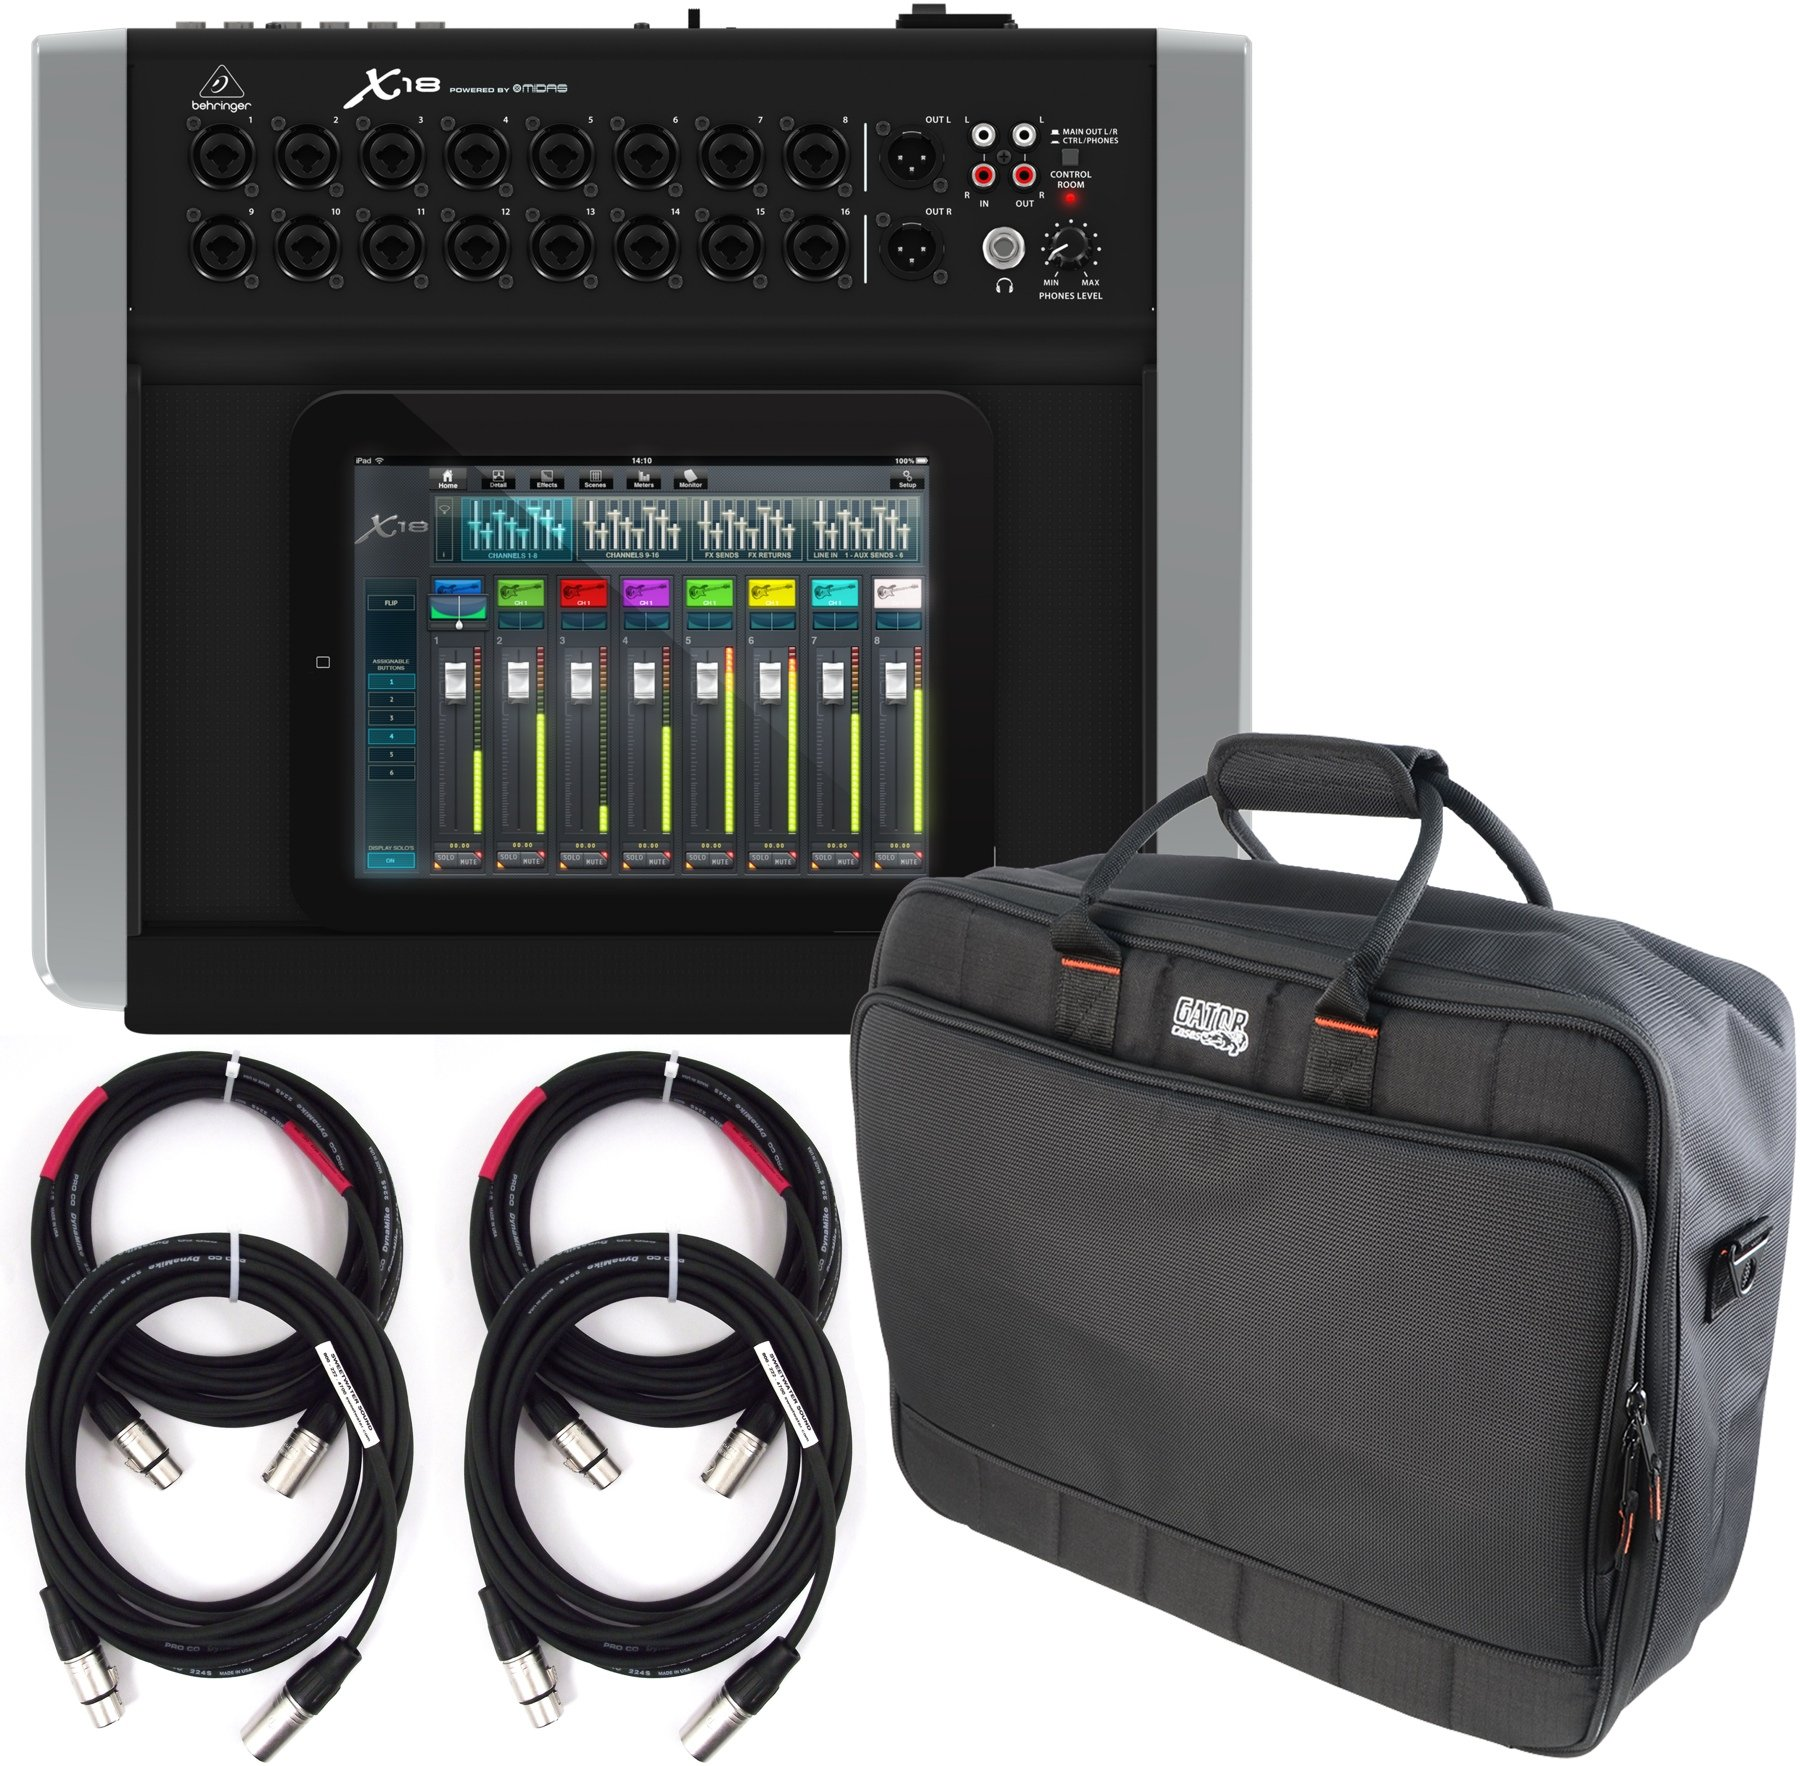 Instant win attraction pass mac case briefcases